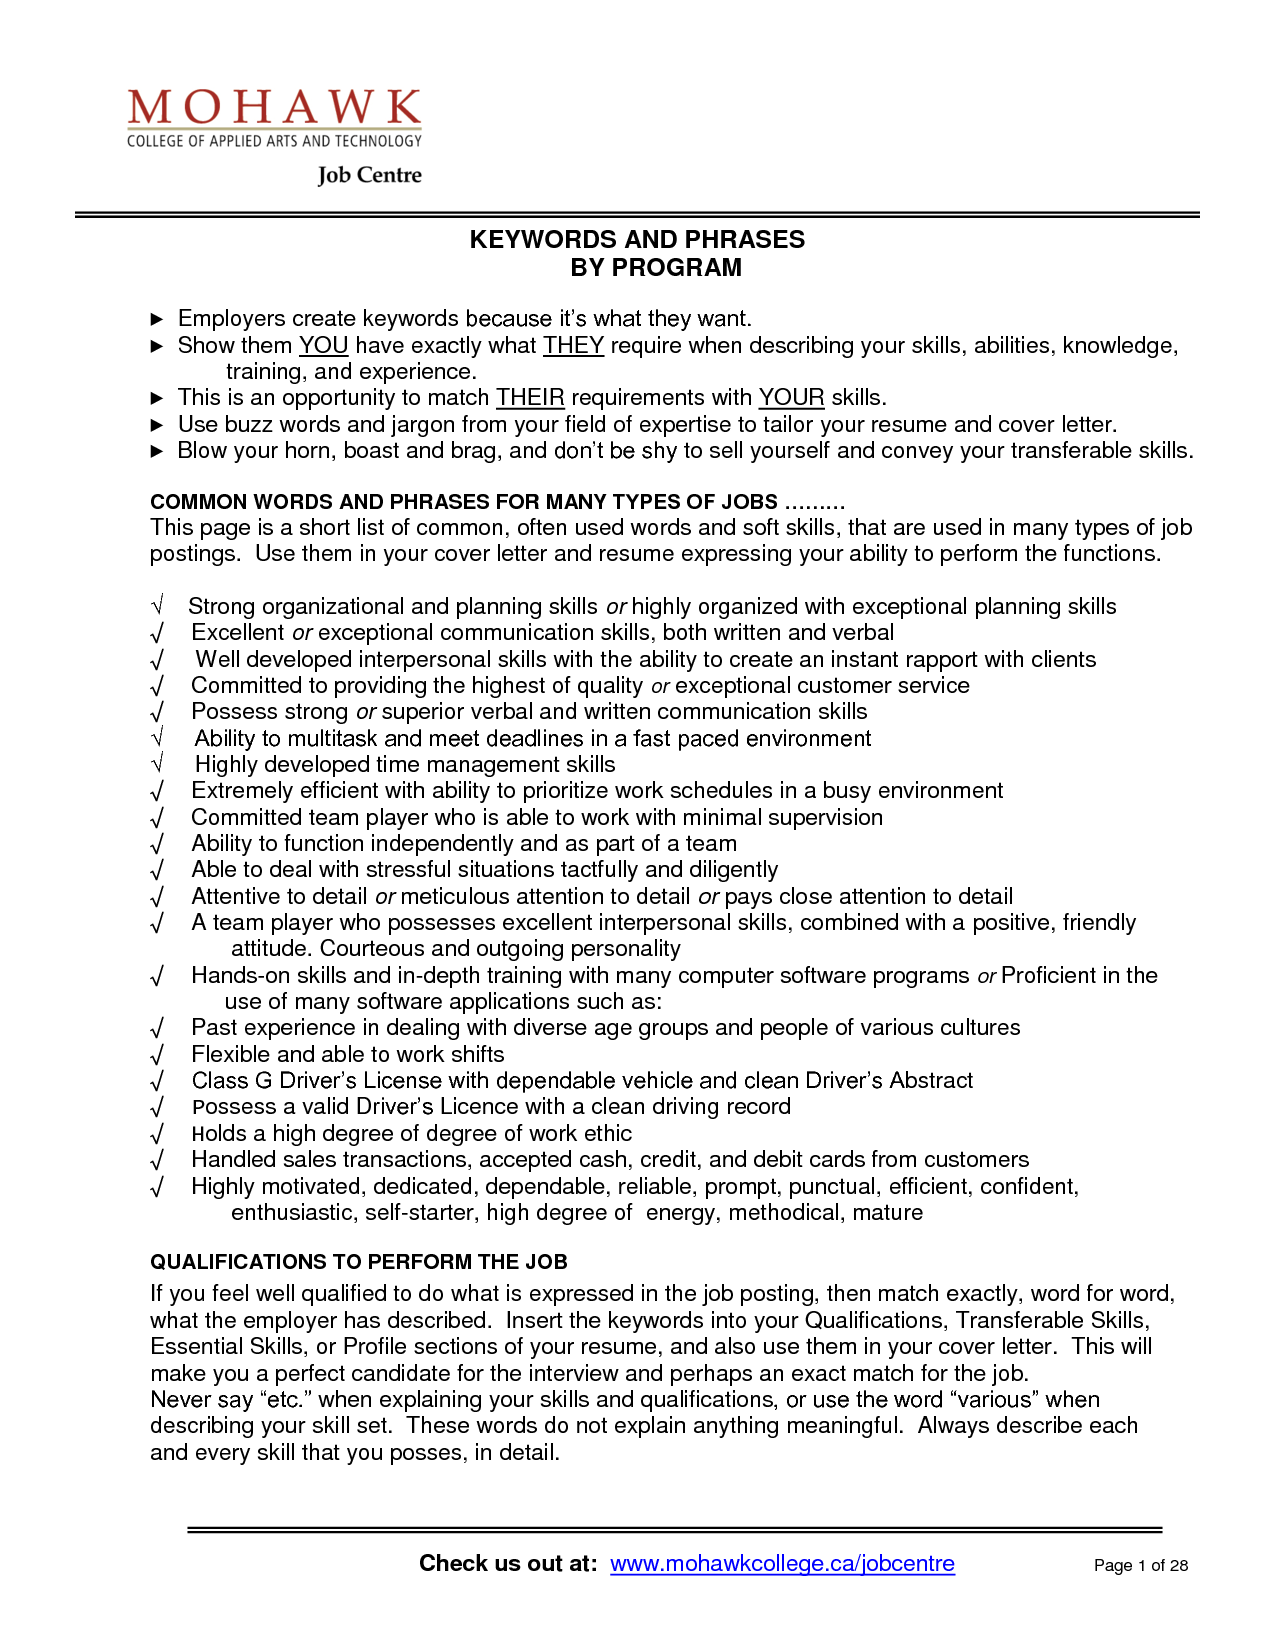 Transferable Skills Resume Transferable Skills Resume Sample